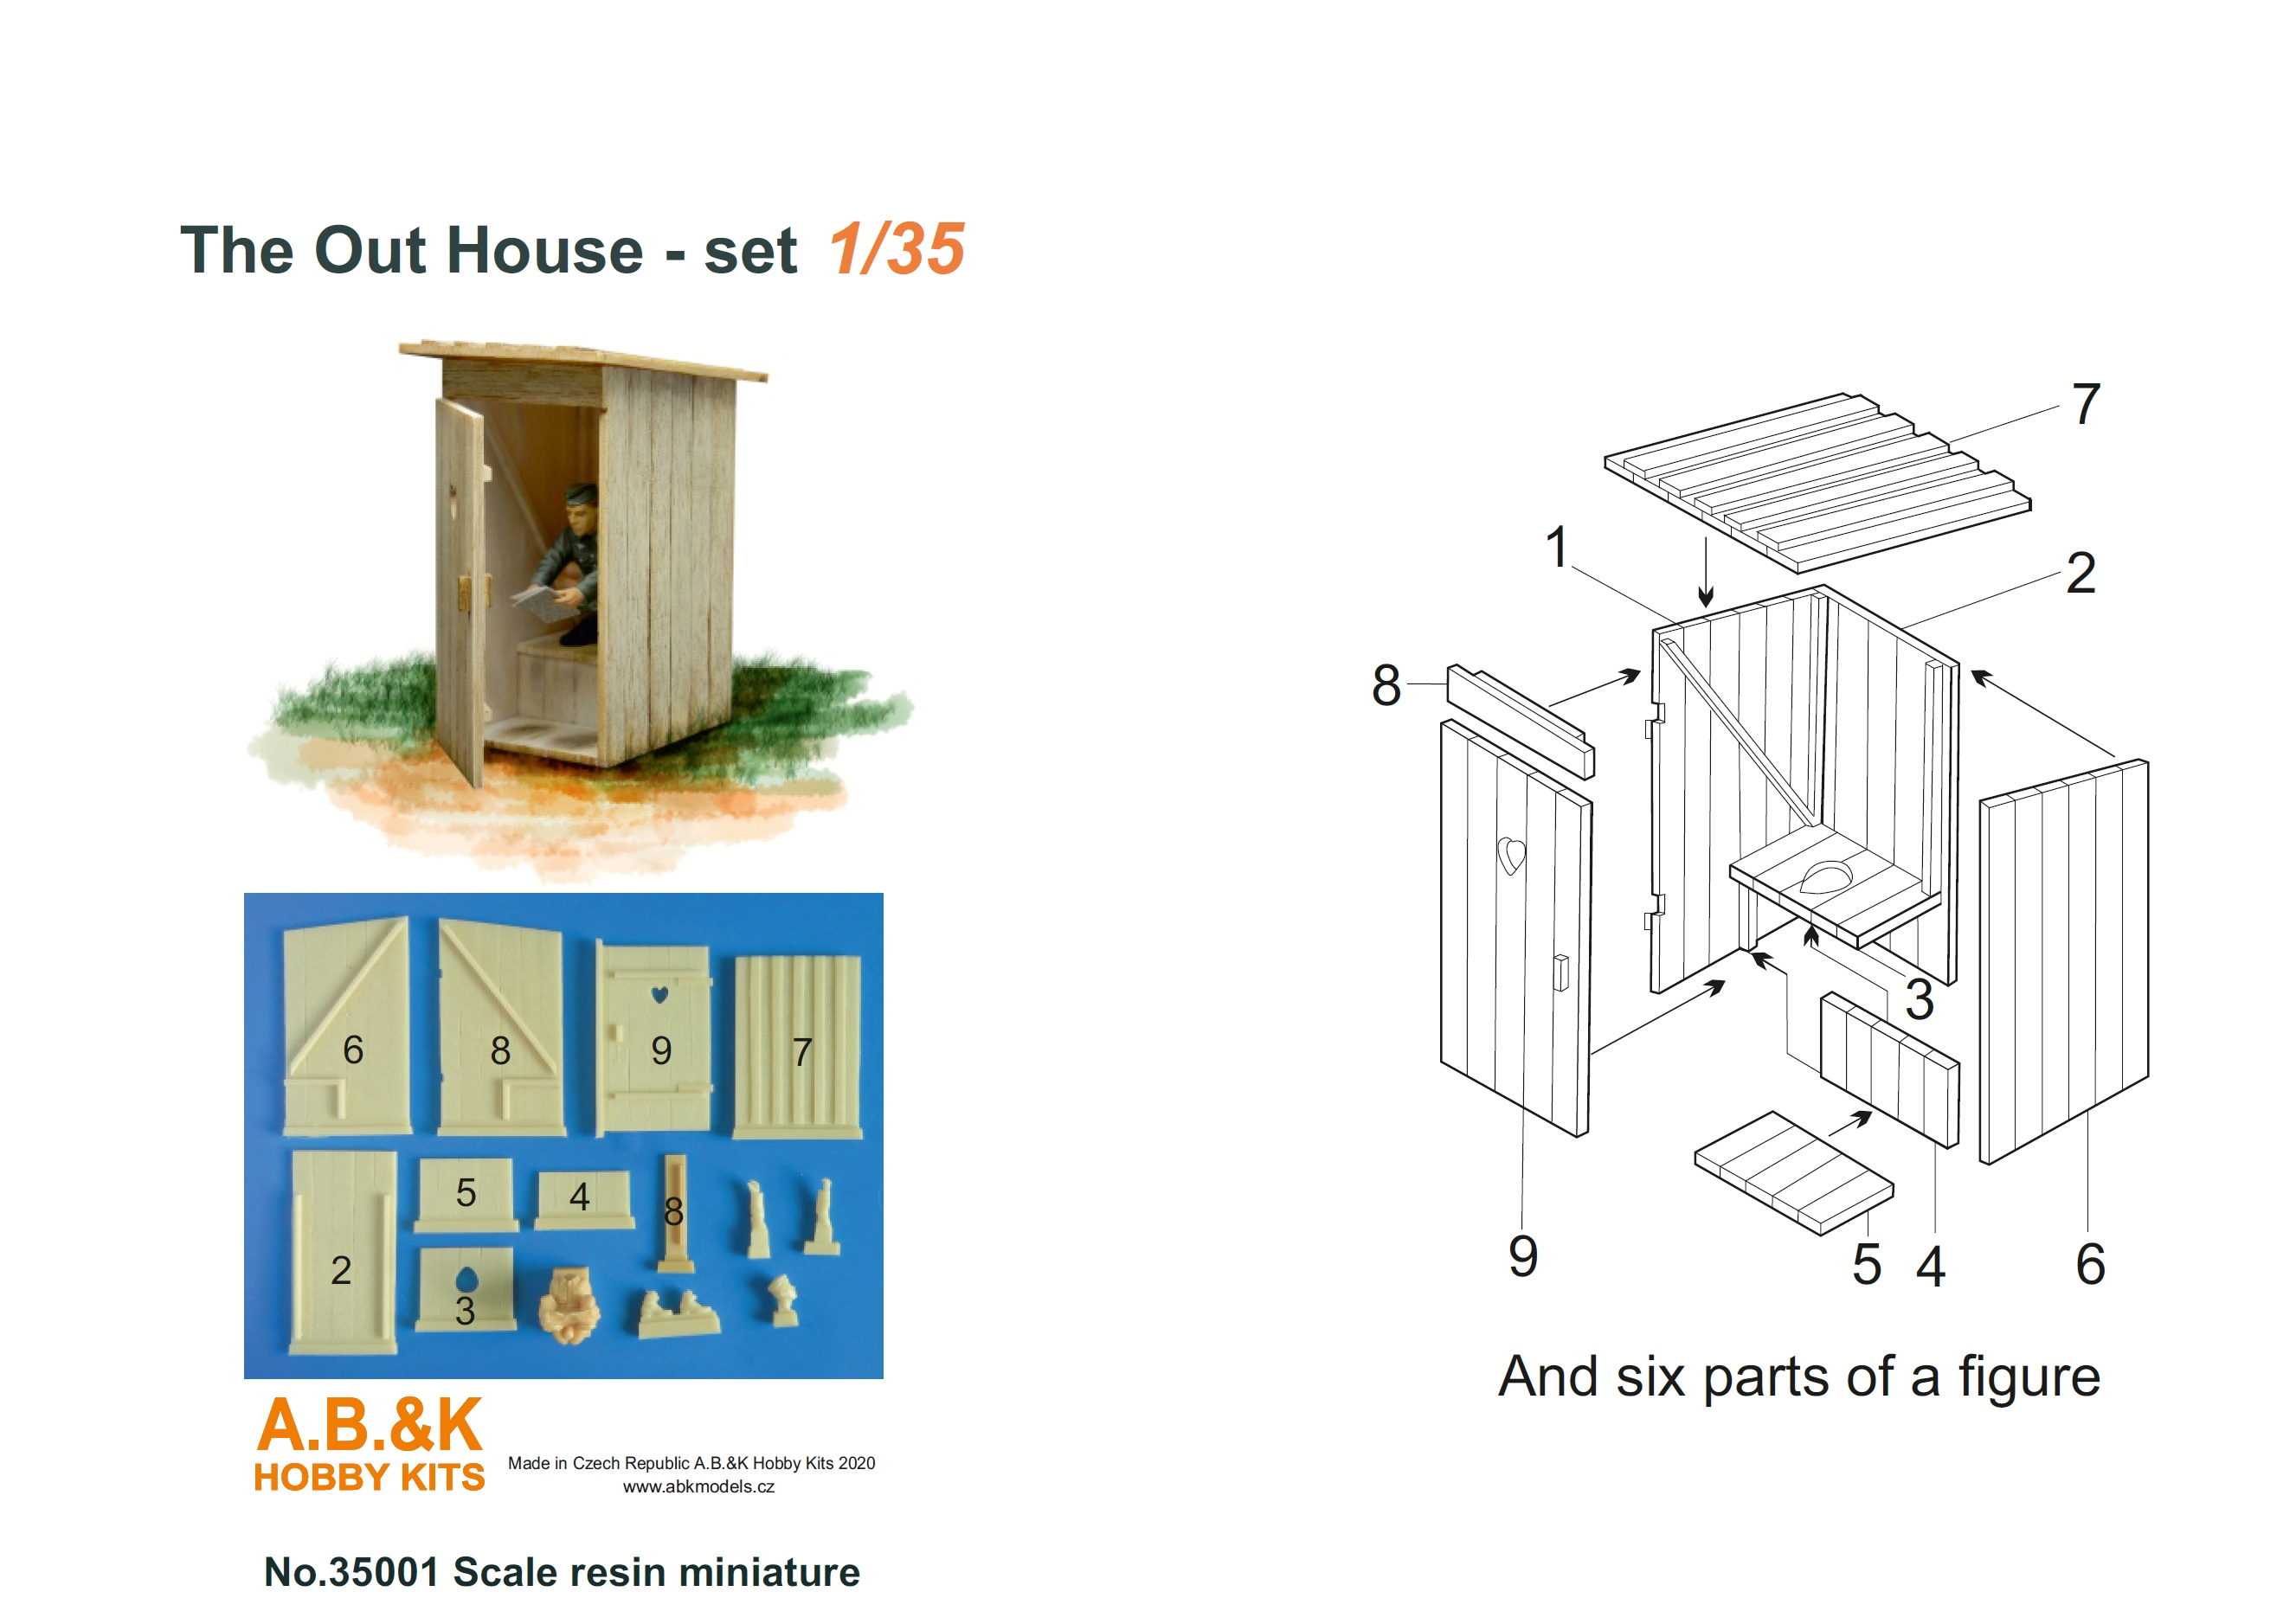 The Out House - set 1/35